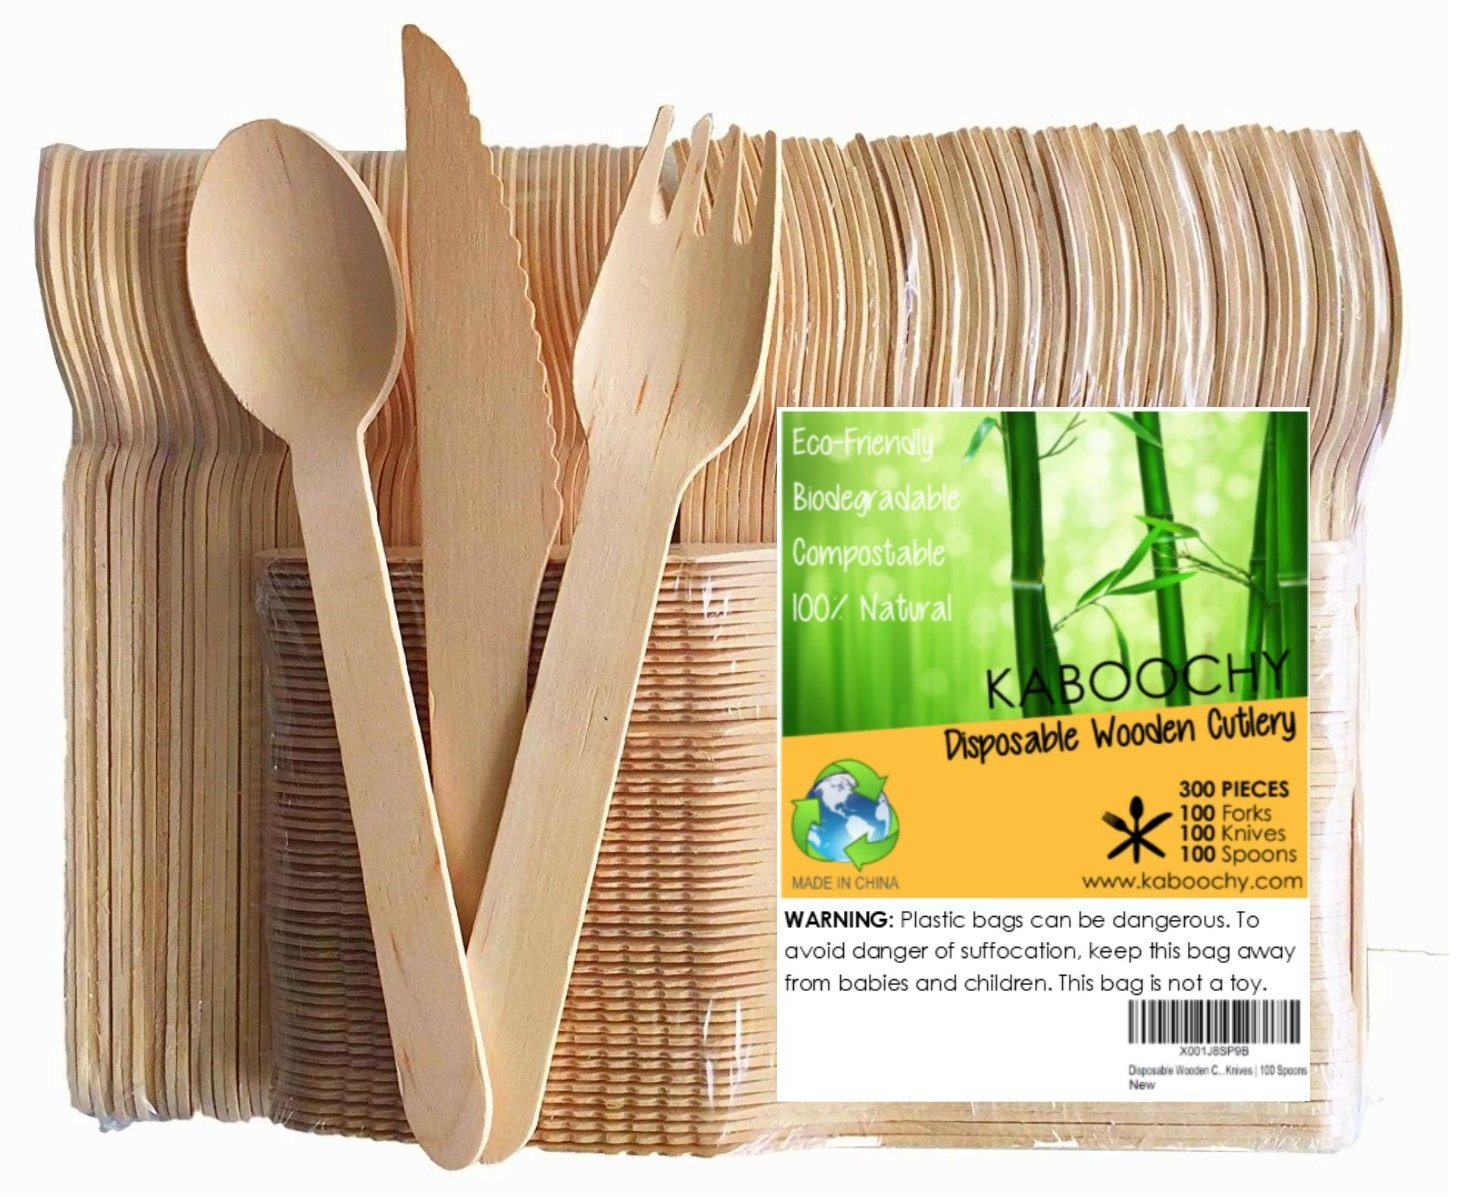 Disposable Wooden Cutlery 300pc Set   100 Forks   100 Knives   100 Spoons, 6.25 inch length. 100% Natural, Eco-Friendly, Compostable, Biodegradable, Premium Utensils for Parties by KABOOCHY